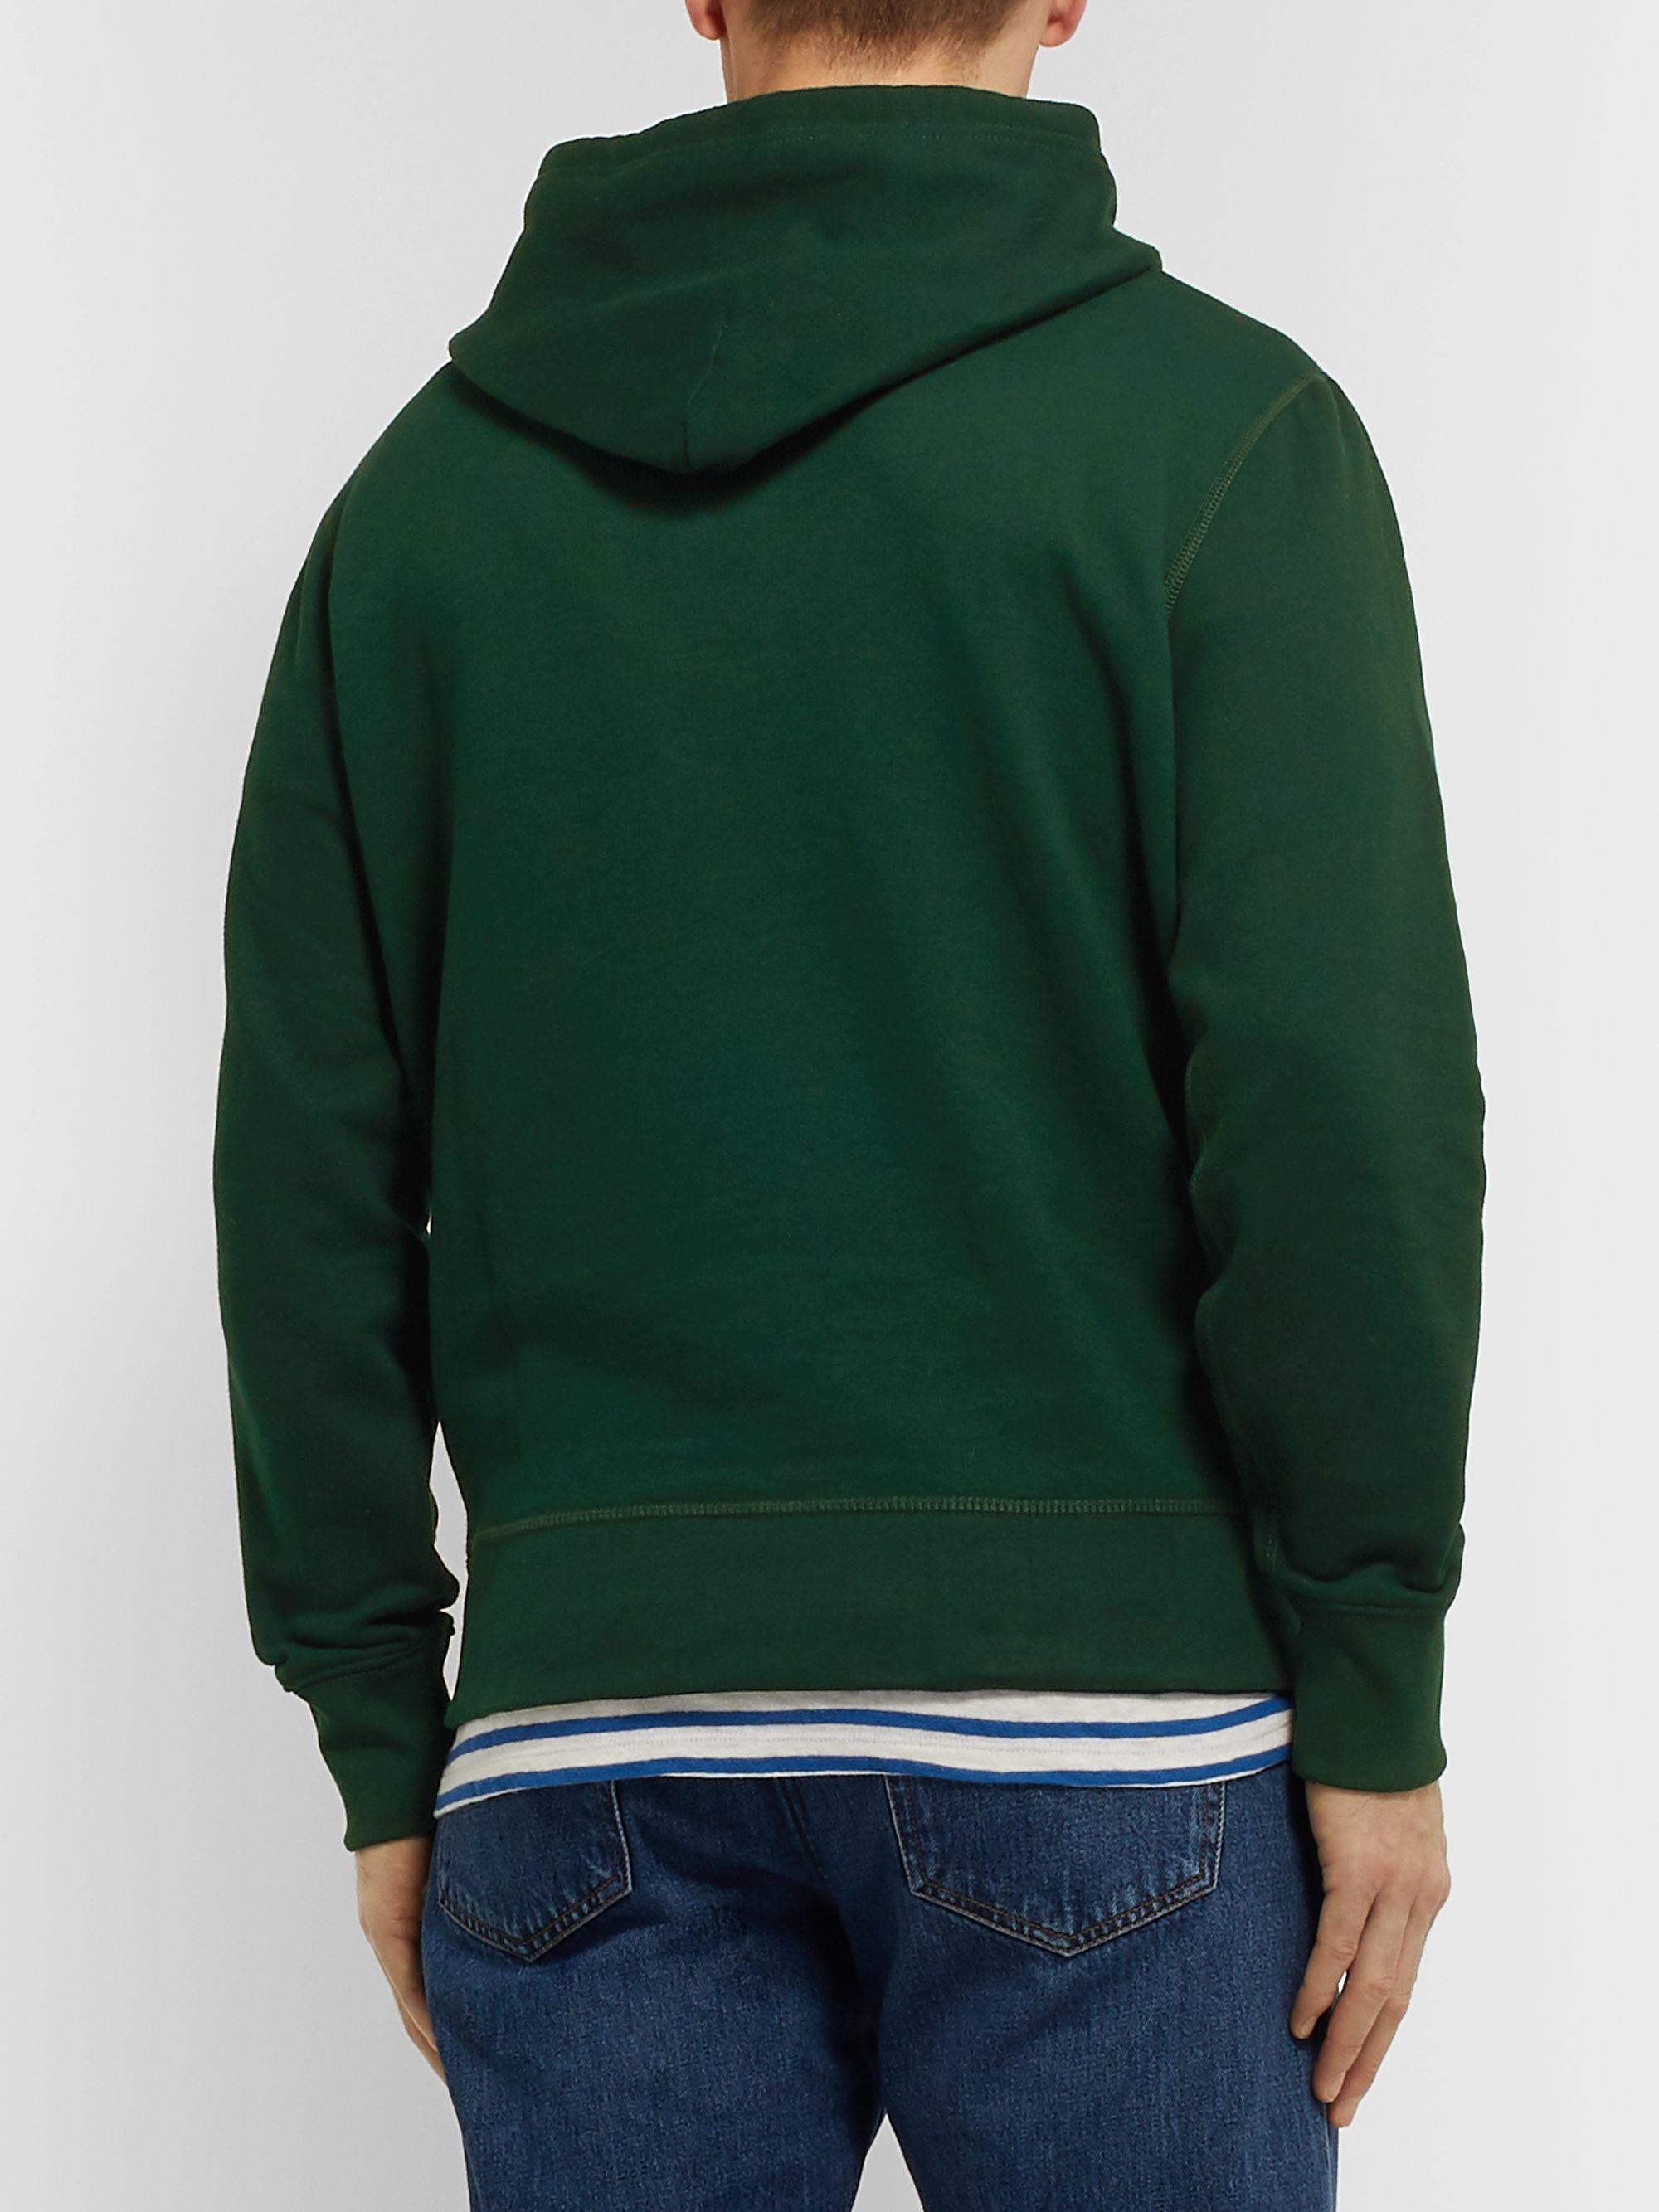 Polo Ralph Lauren Embroidered Cotton-Blend Jersey Hoodie